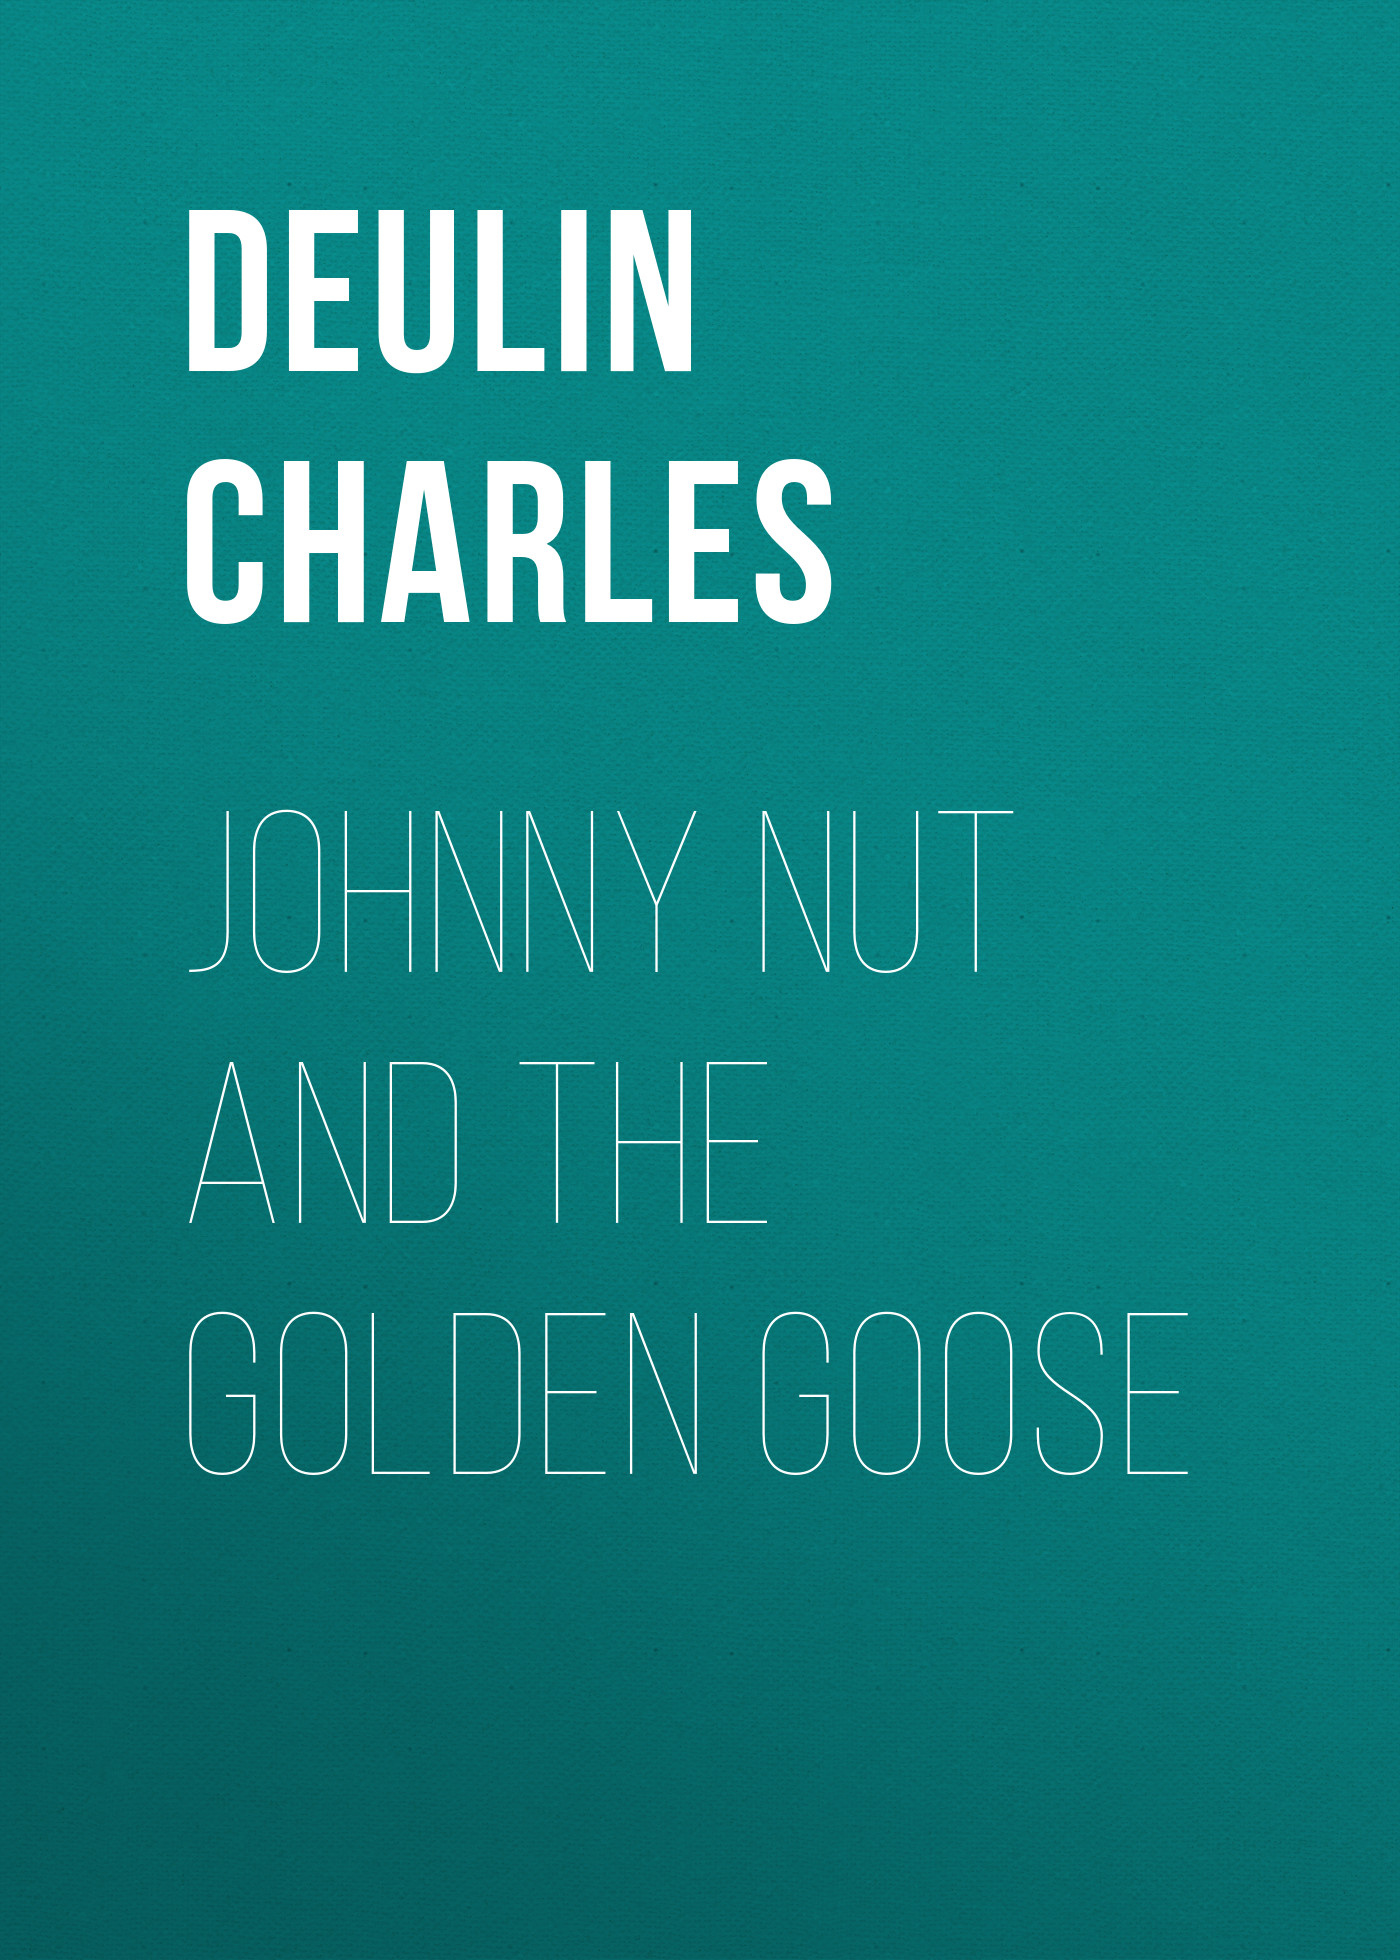 Deulin Charles Johnny Nut and the Golden Goose dmitrii emets tanya grotter and the golden leech